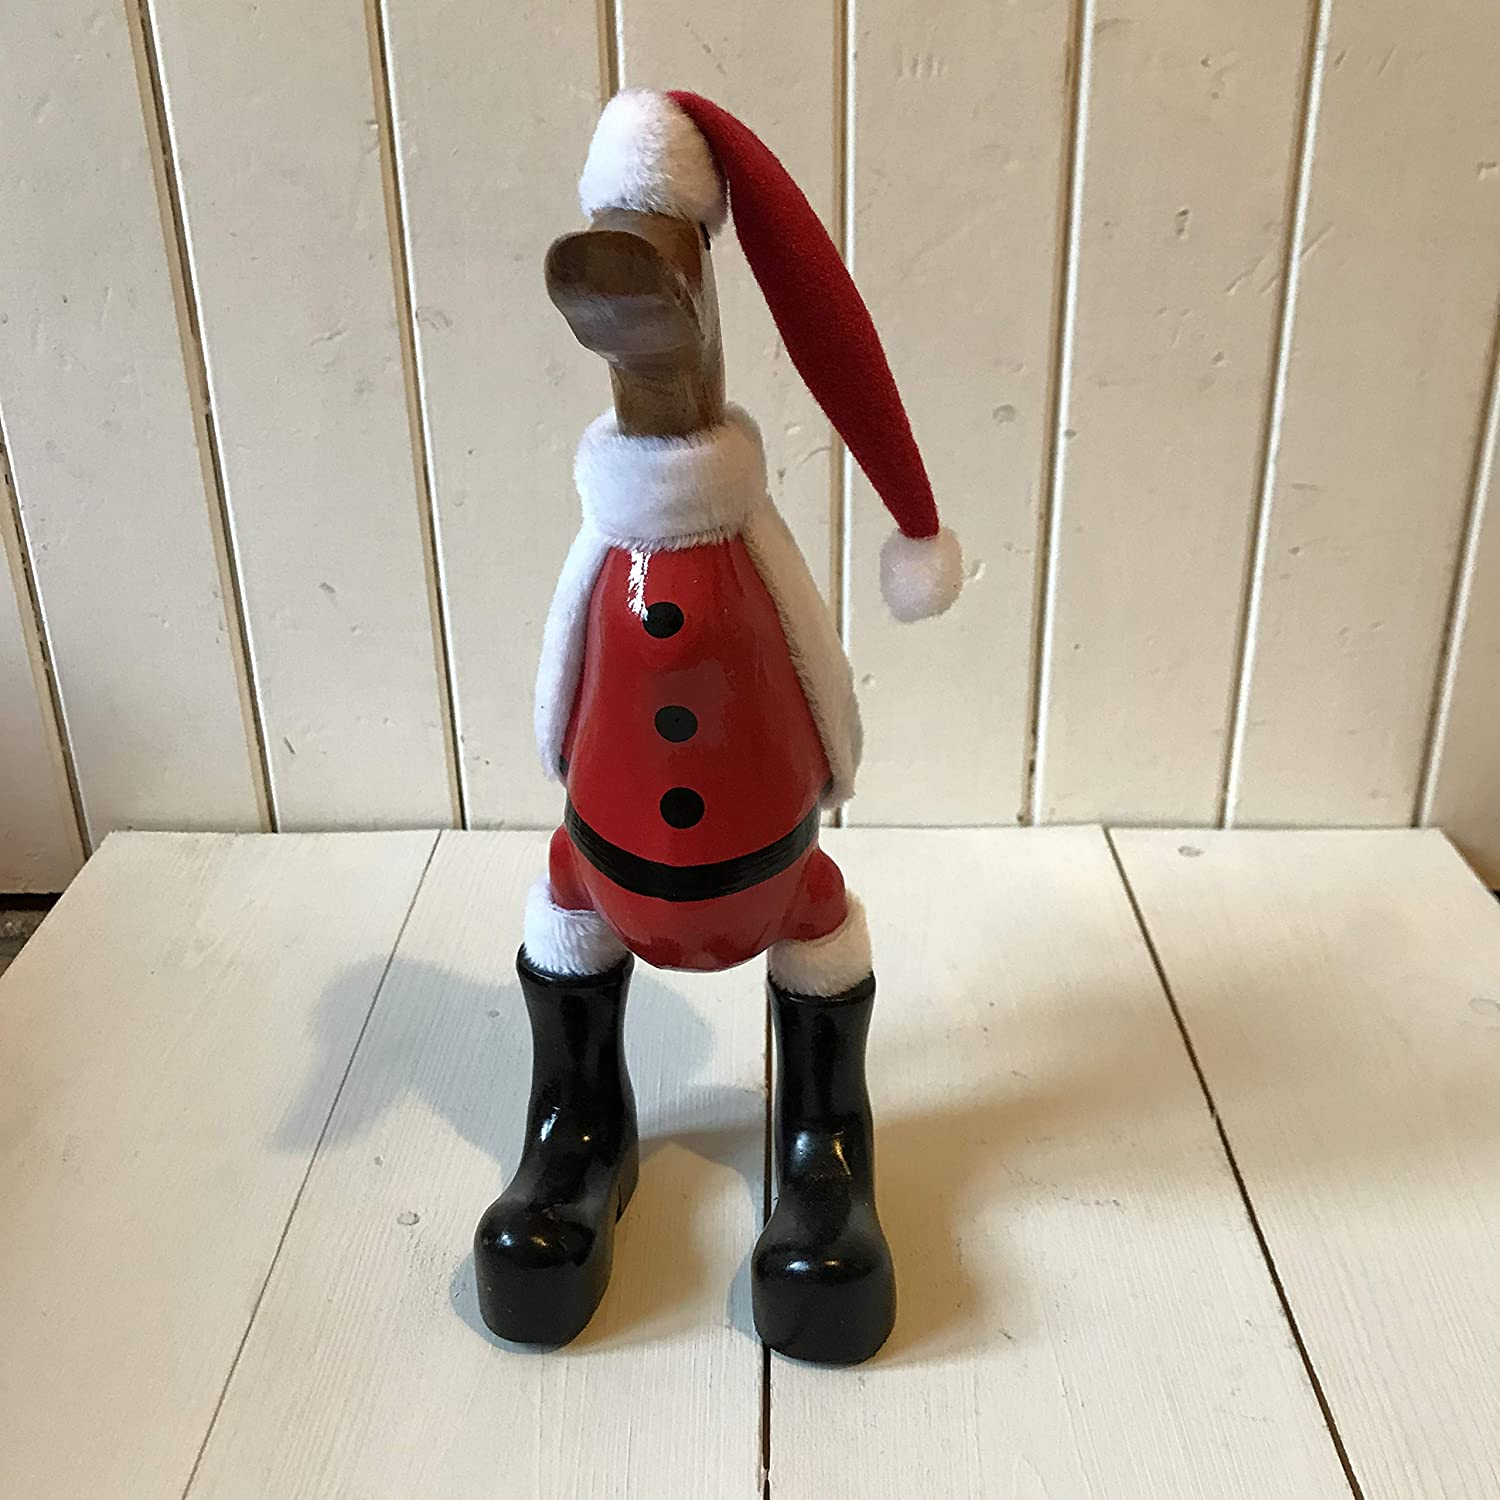 Wooden Duck Christmas Duck Small Handcrafted Decorated Santa